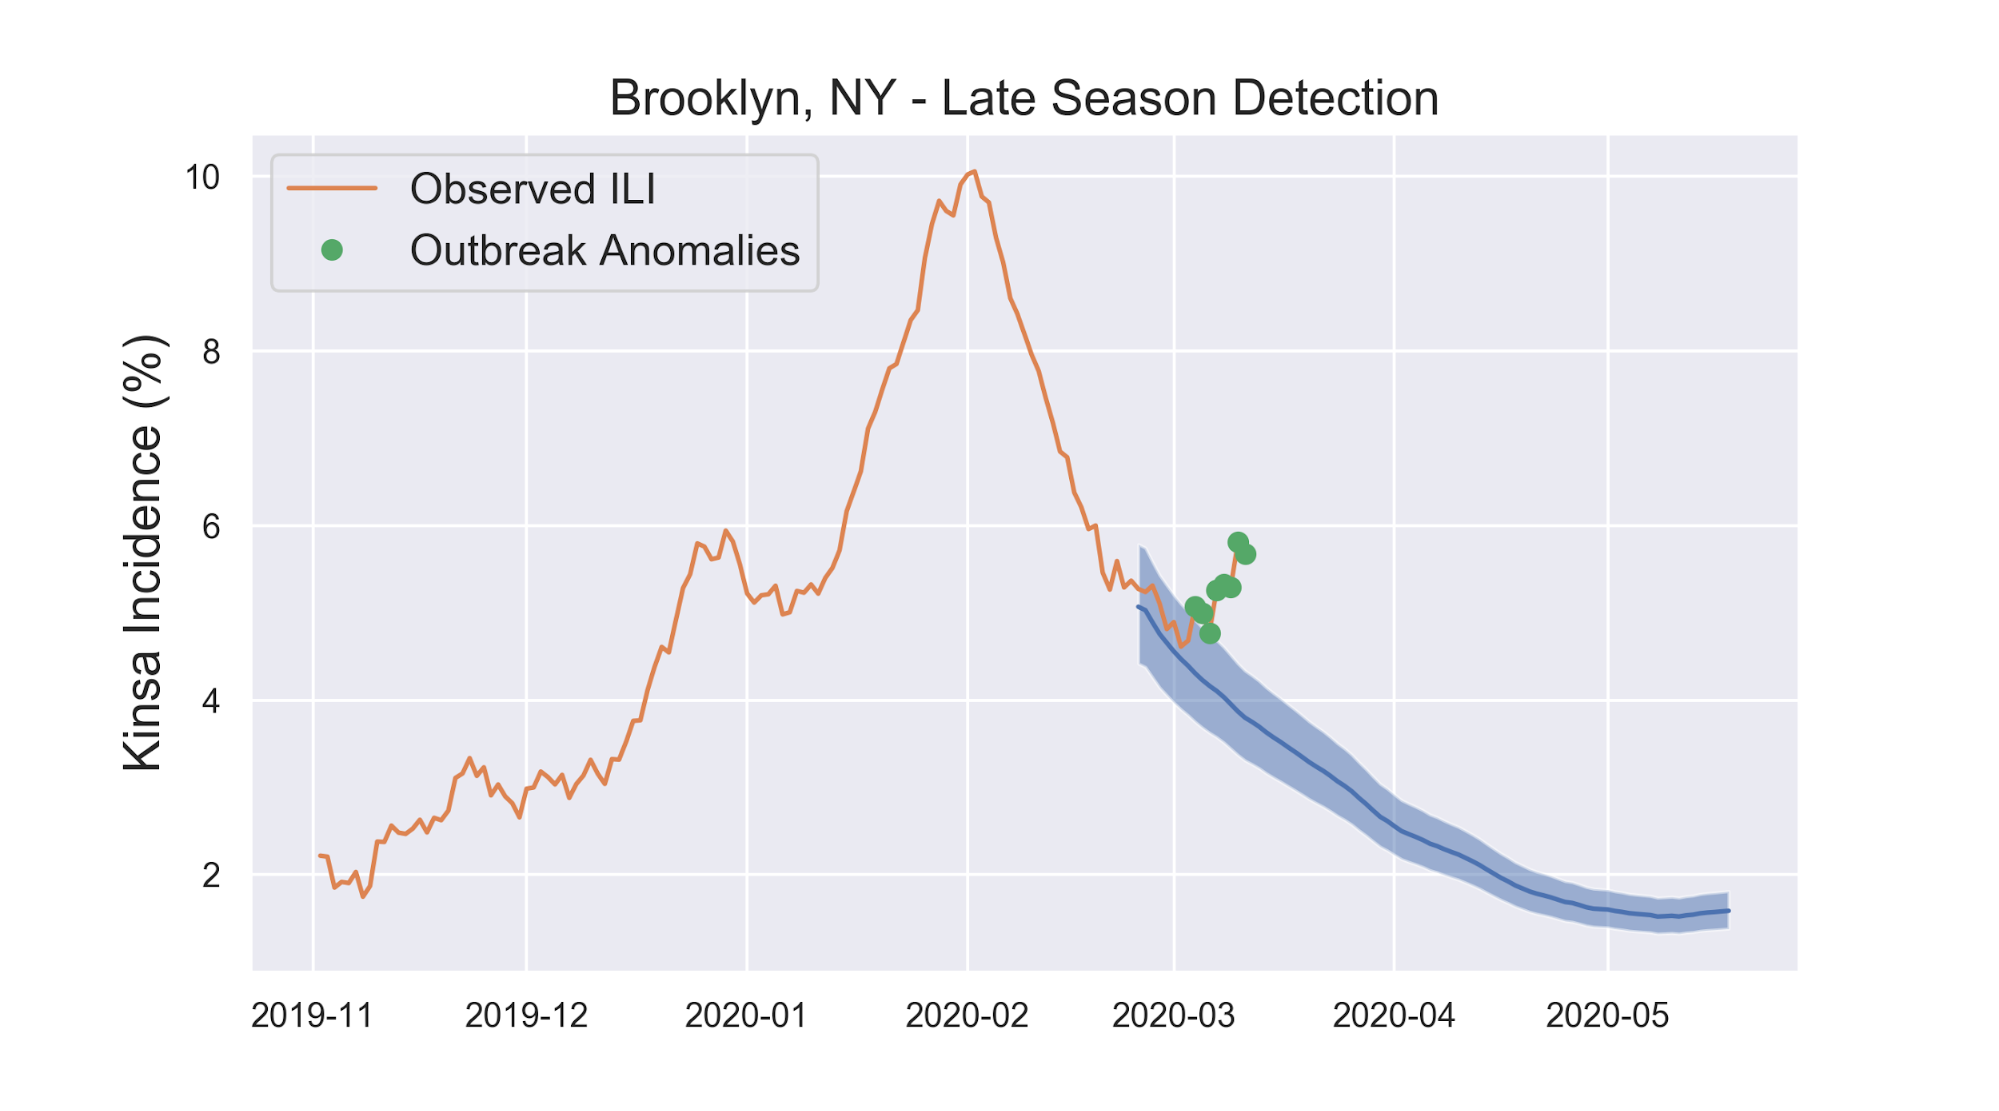 Brooklyn, NY - Late Season Detection